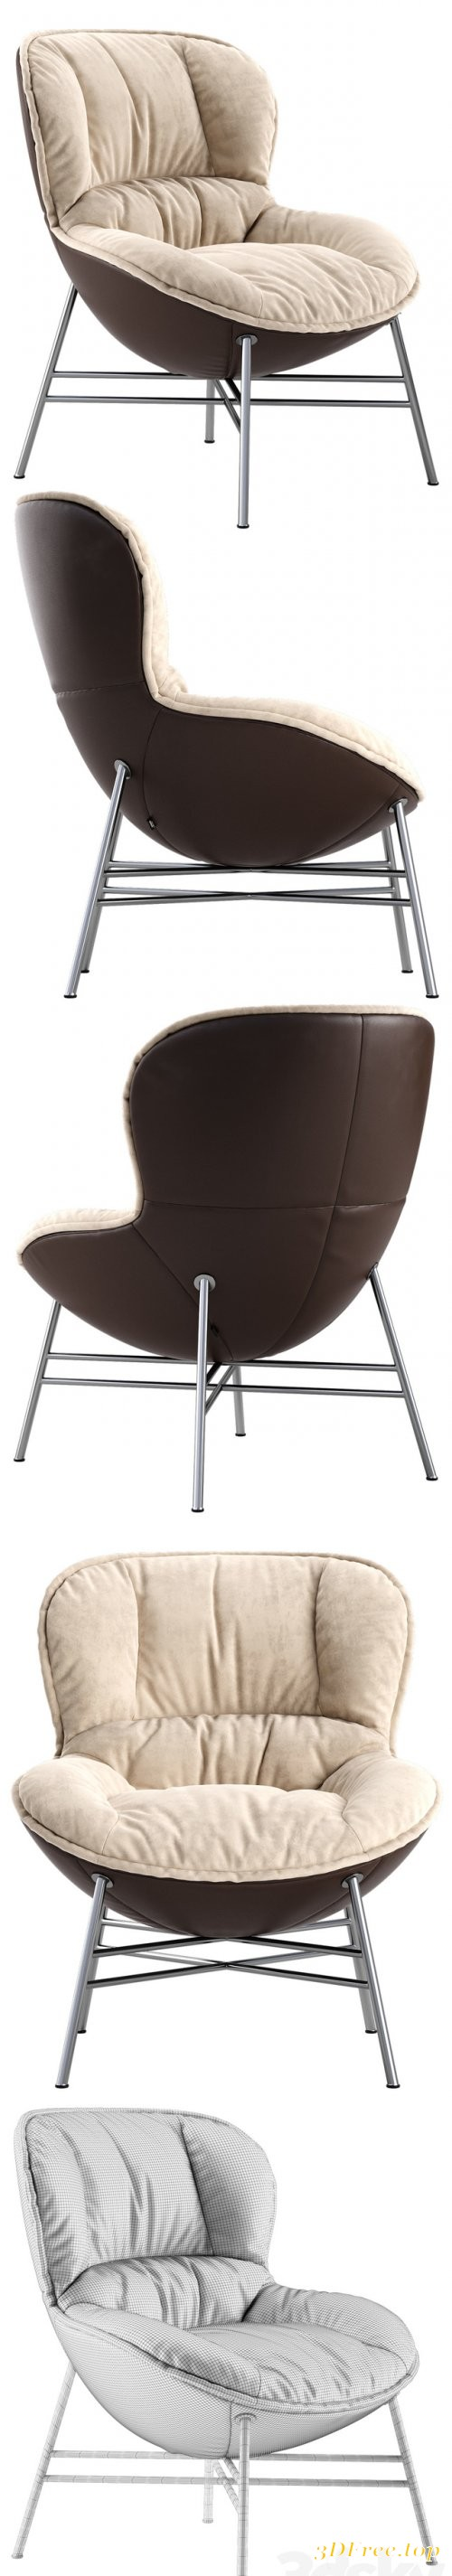 Ditre italia Softy armchair